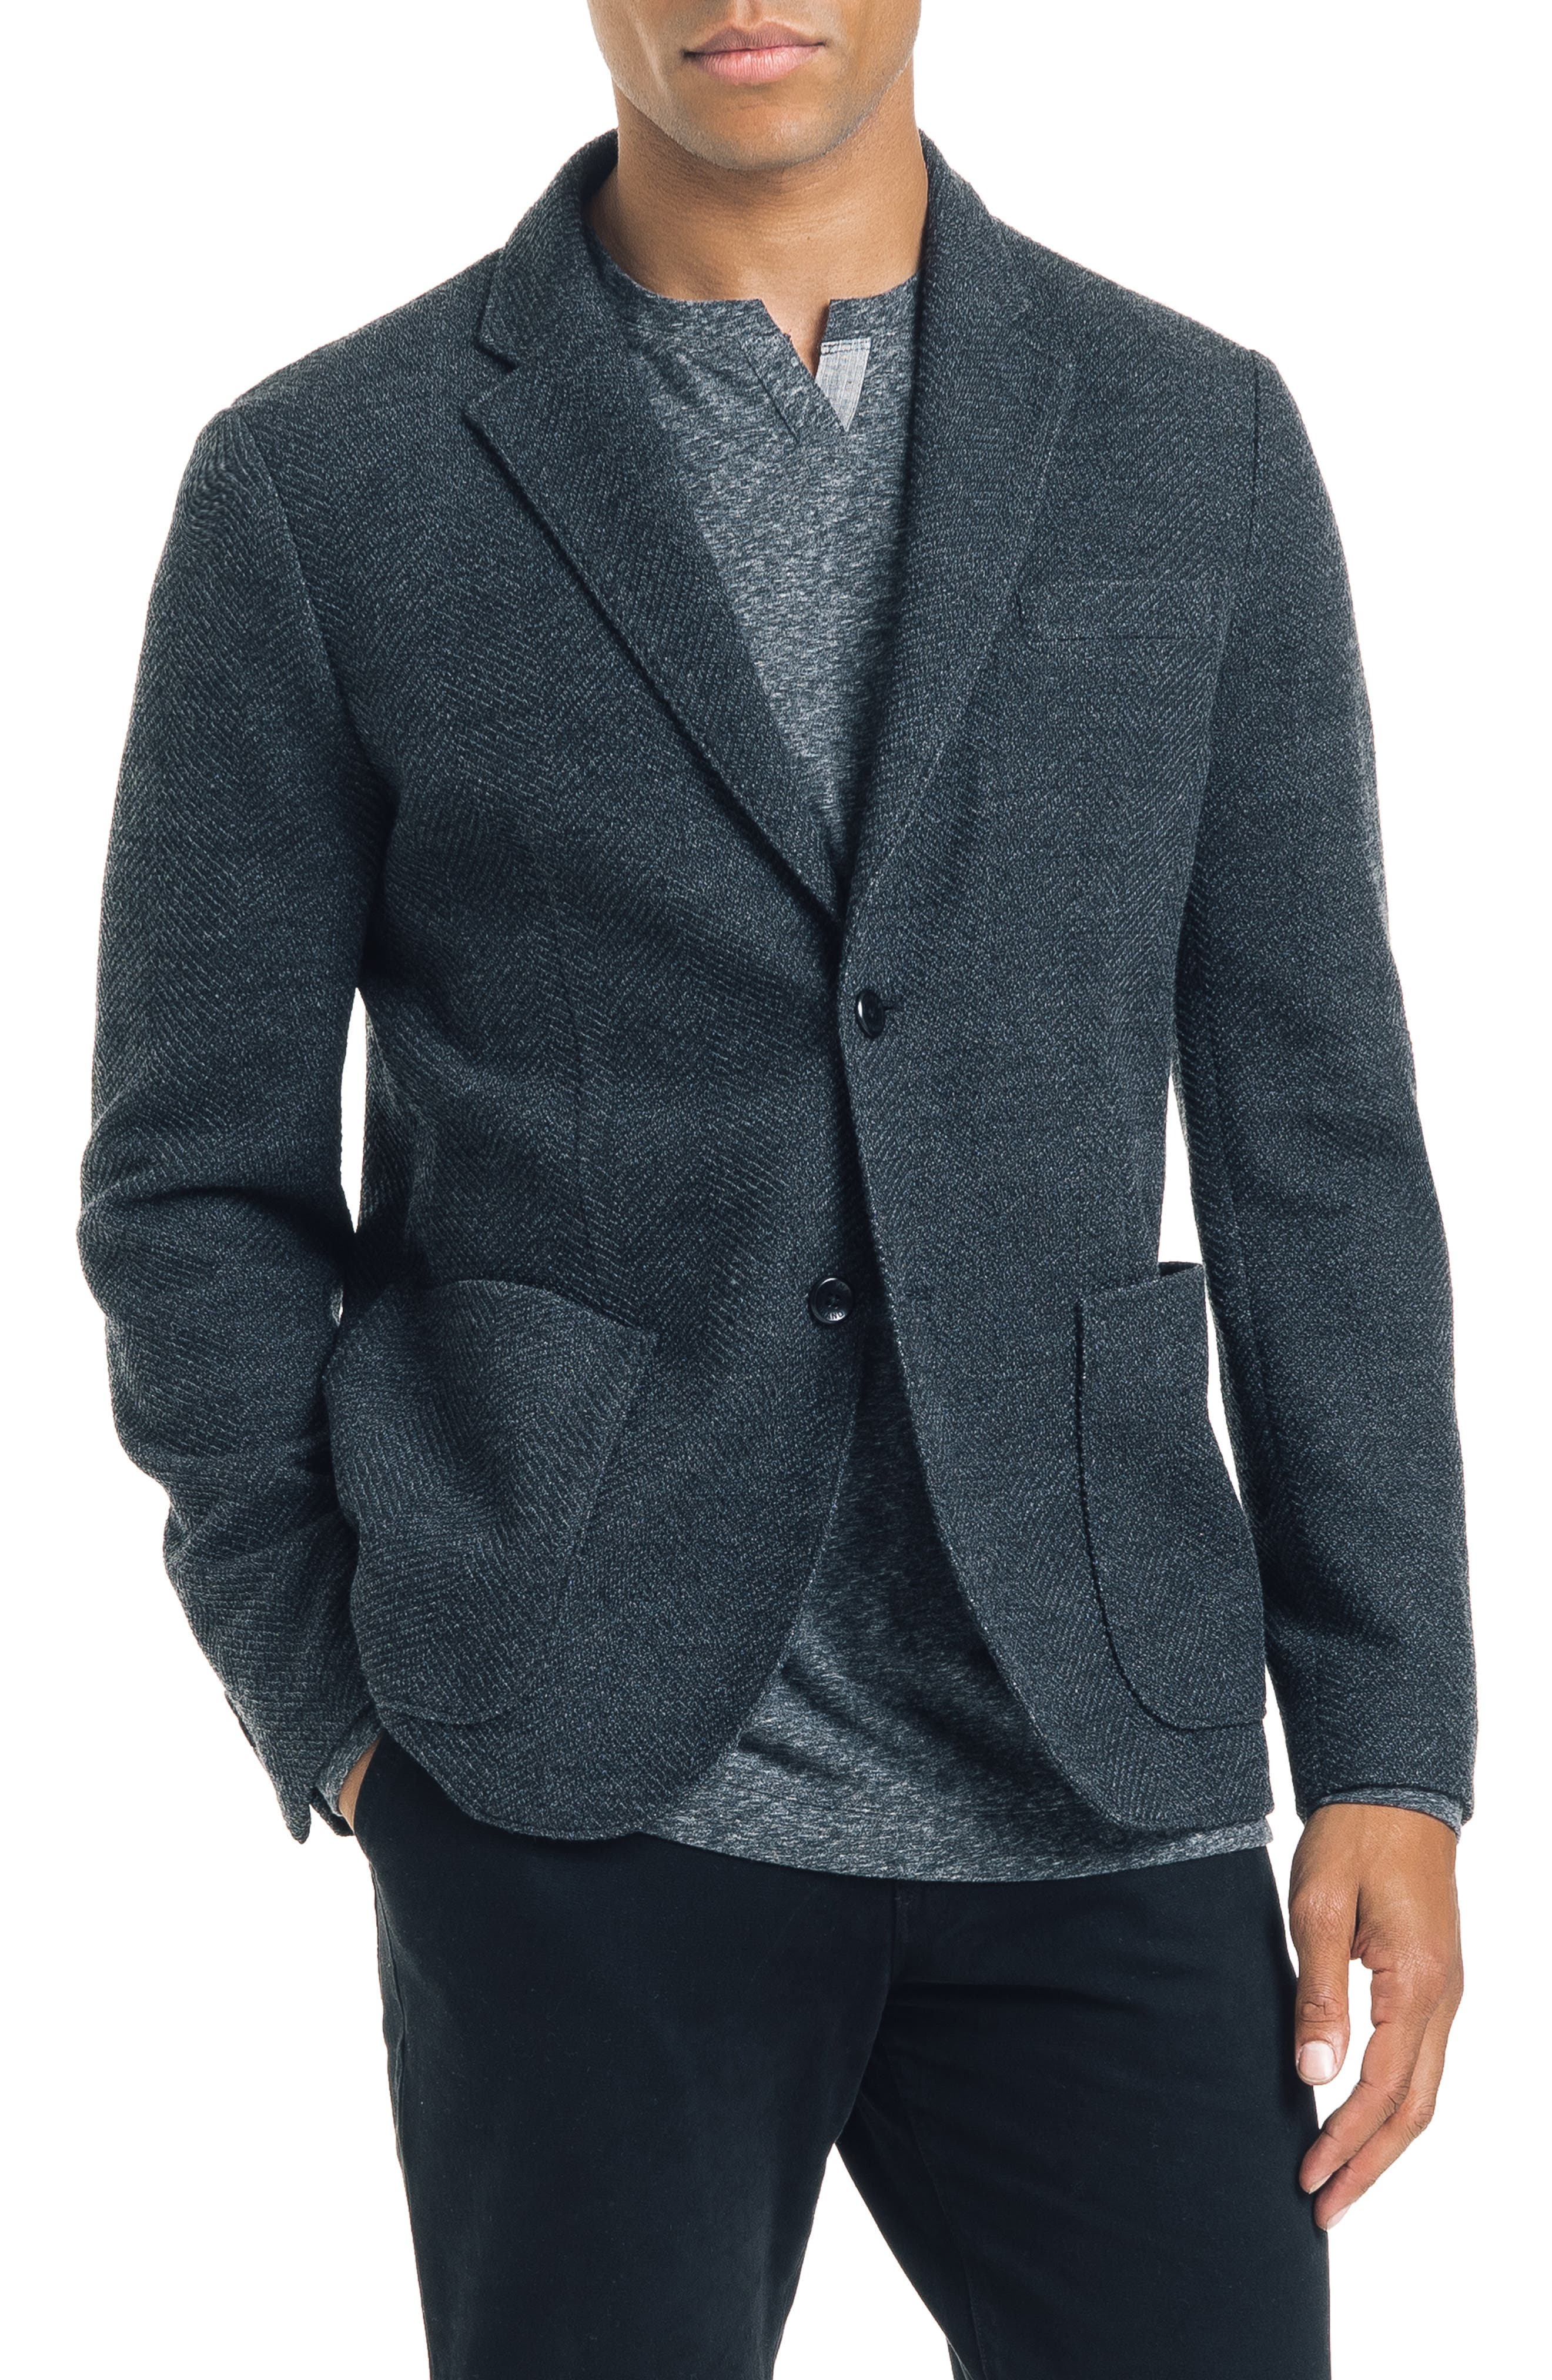 GOOD MAN BRAND Slim Fit Double Face Sport Coat in Charcoal